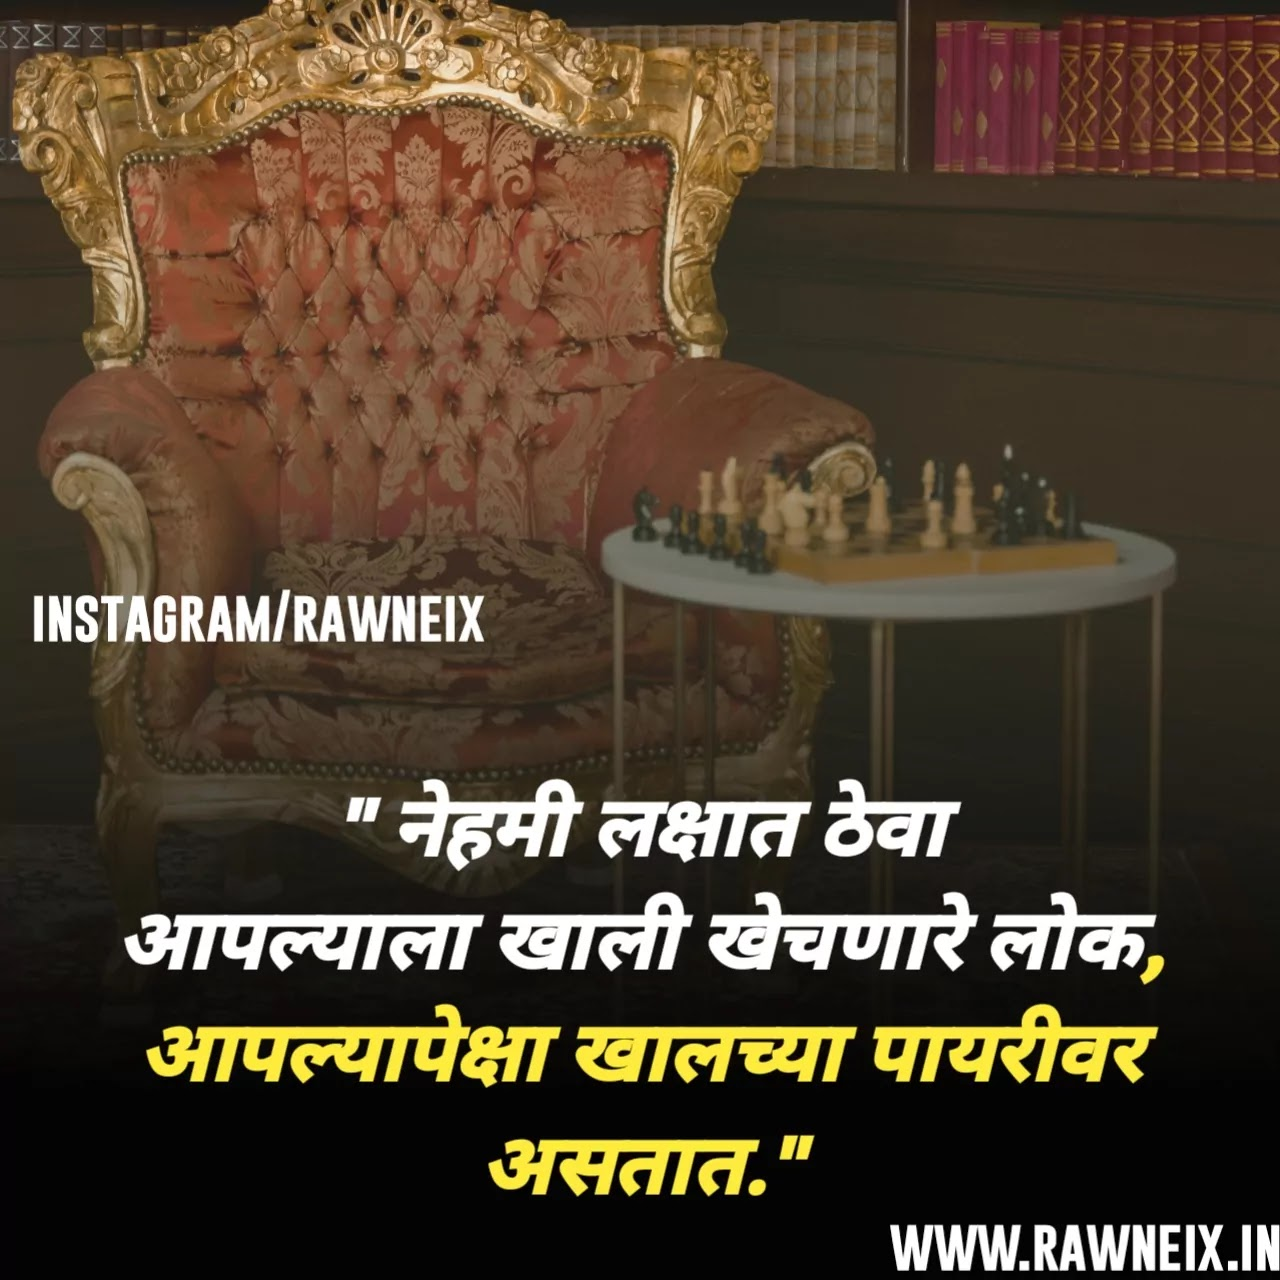 Motivational Quotes In Marathi | Inspirational Quotes In Marathi With Images